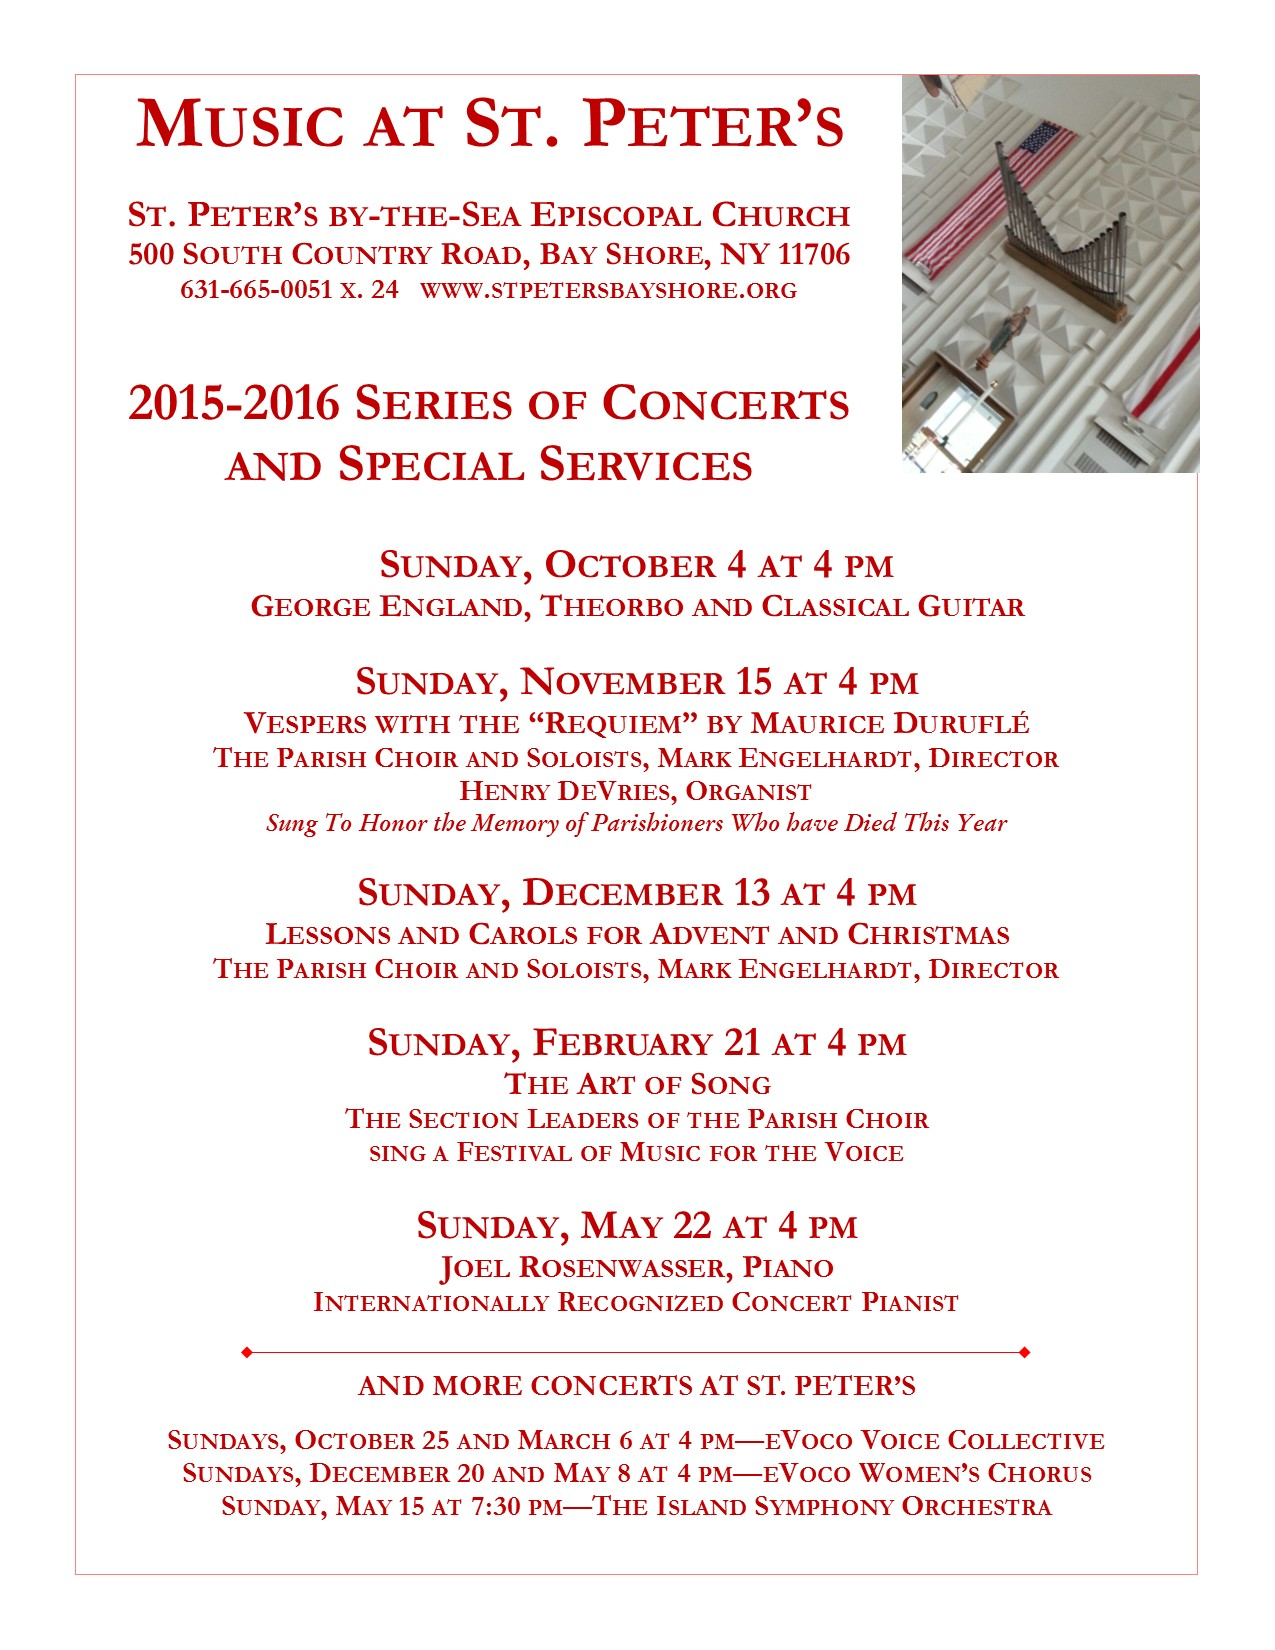 Concert Series Poster